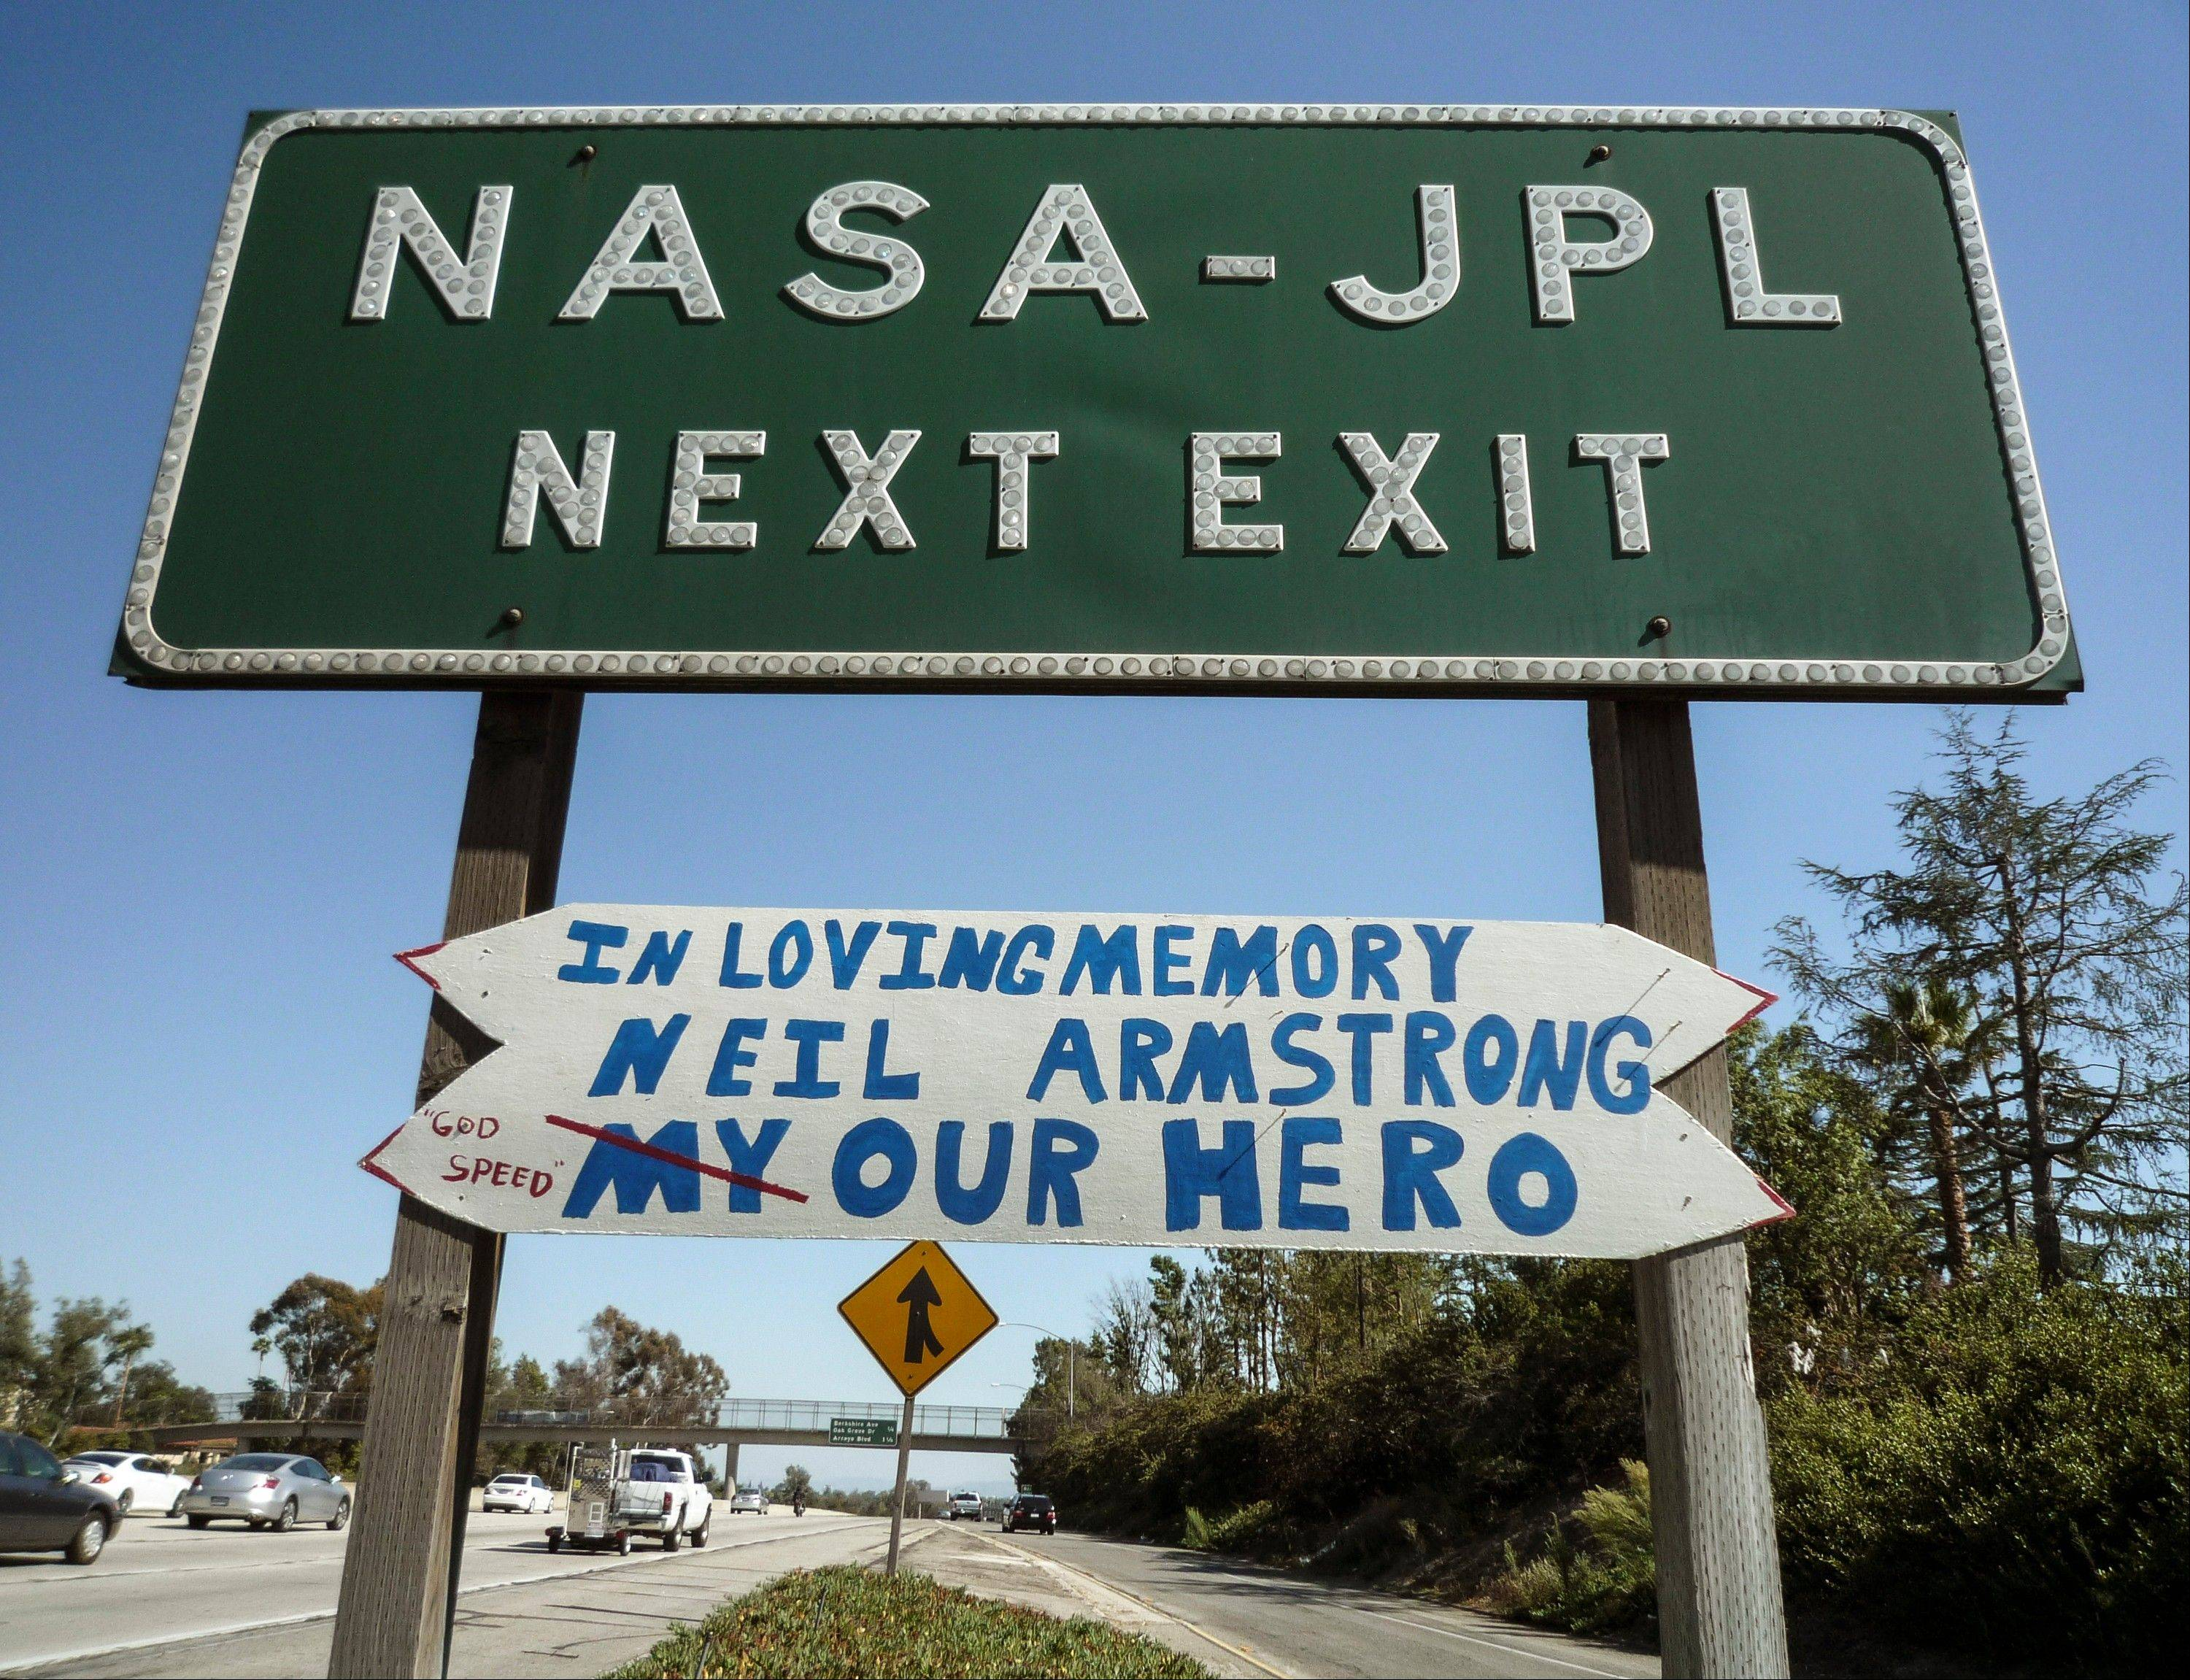 A handmade sign honoring astronaut Neil Armstrong is hung under a freeway off-ramp sign at the NASA-JPL exit on the CA-210 Freeway in Pasadena, Calif. Armstrong, the first man on the moon, inspired millions with his moonwalk.